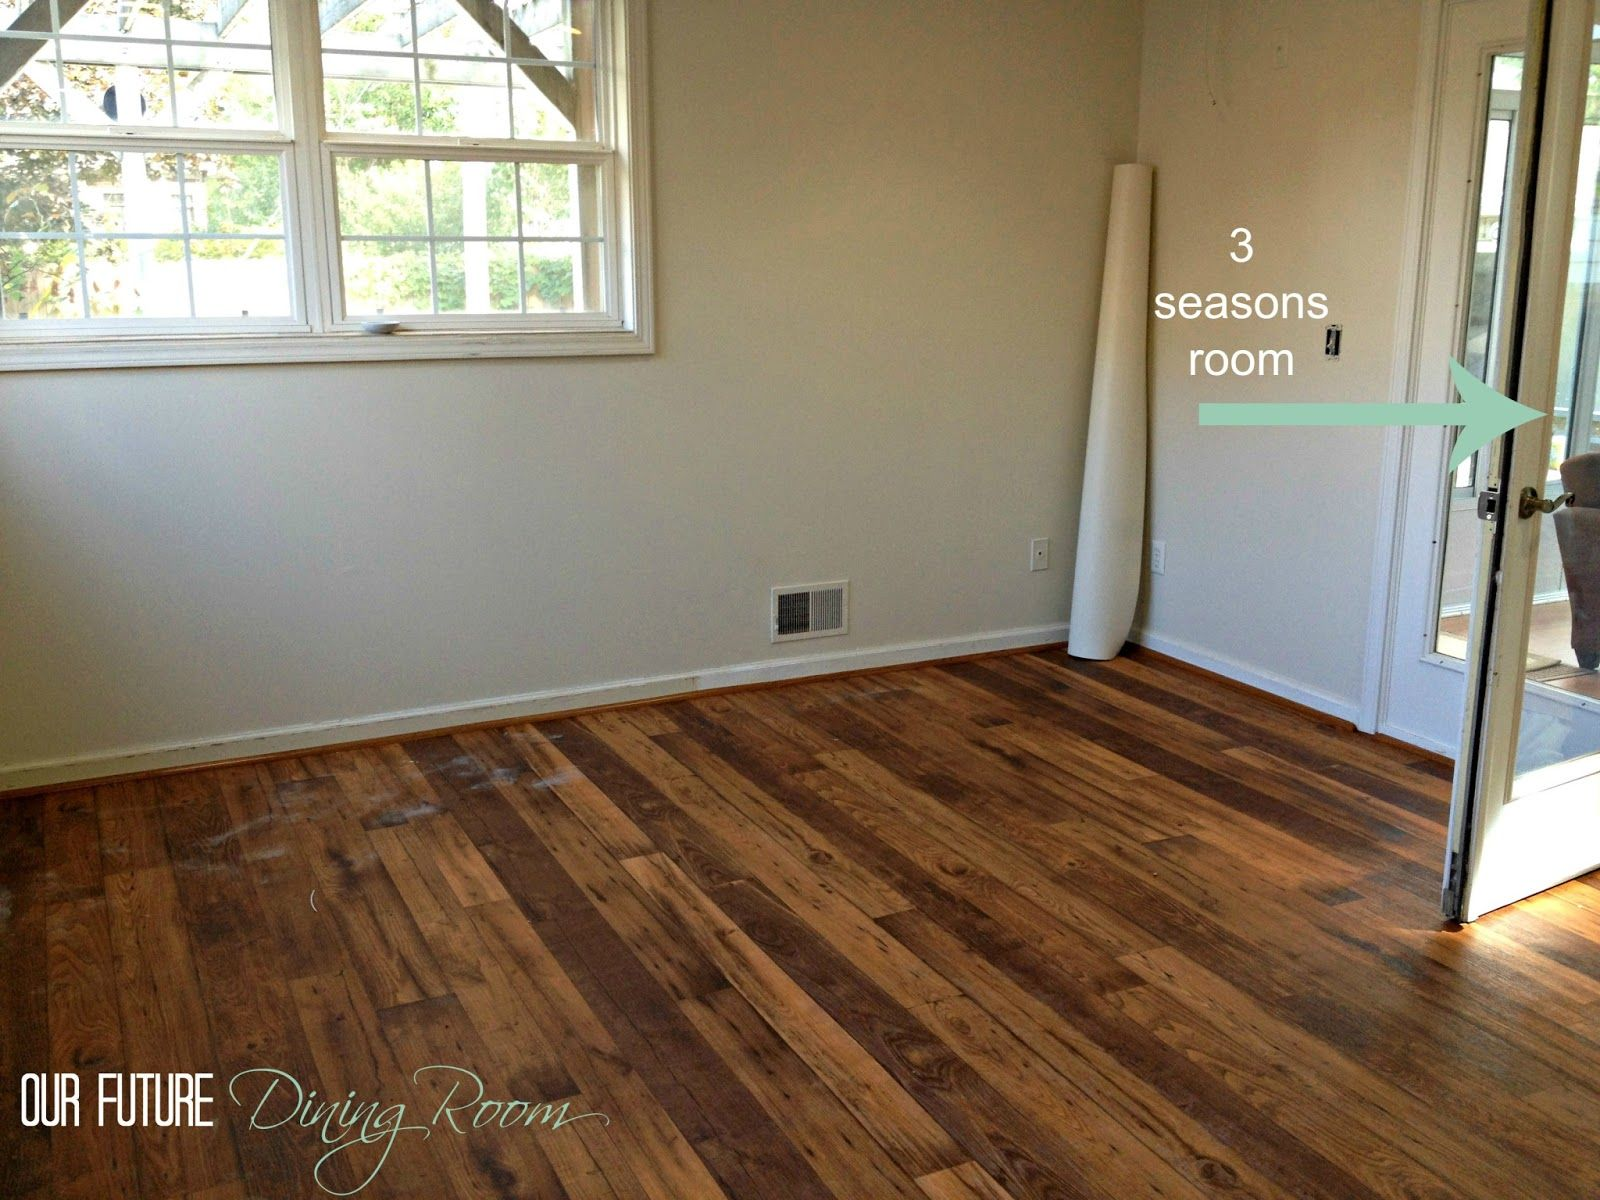 kitchen flooring kitchen flooring vinyl linoleum wood flooring faux hardwood we went with a textured vinyl flooring